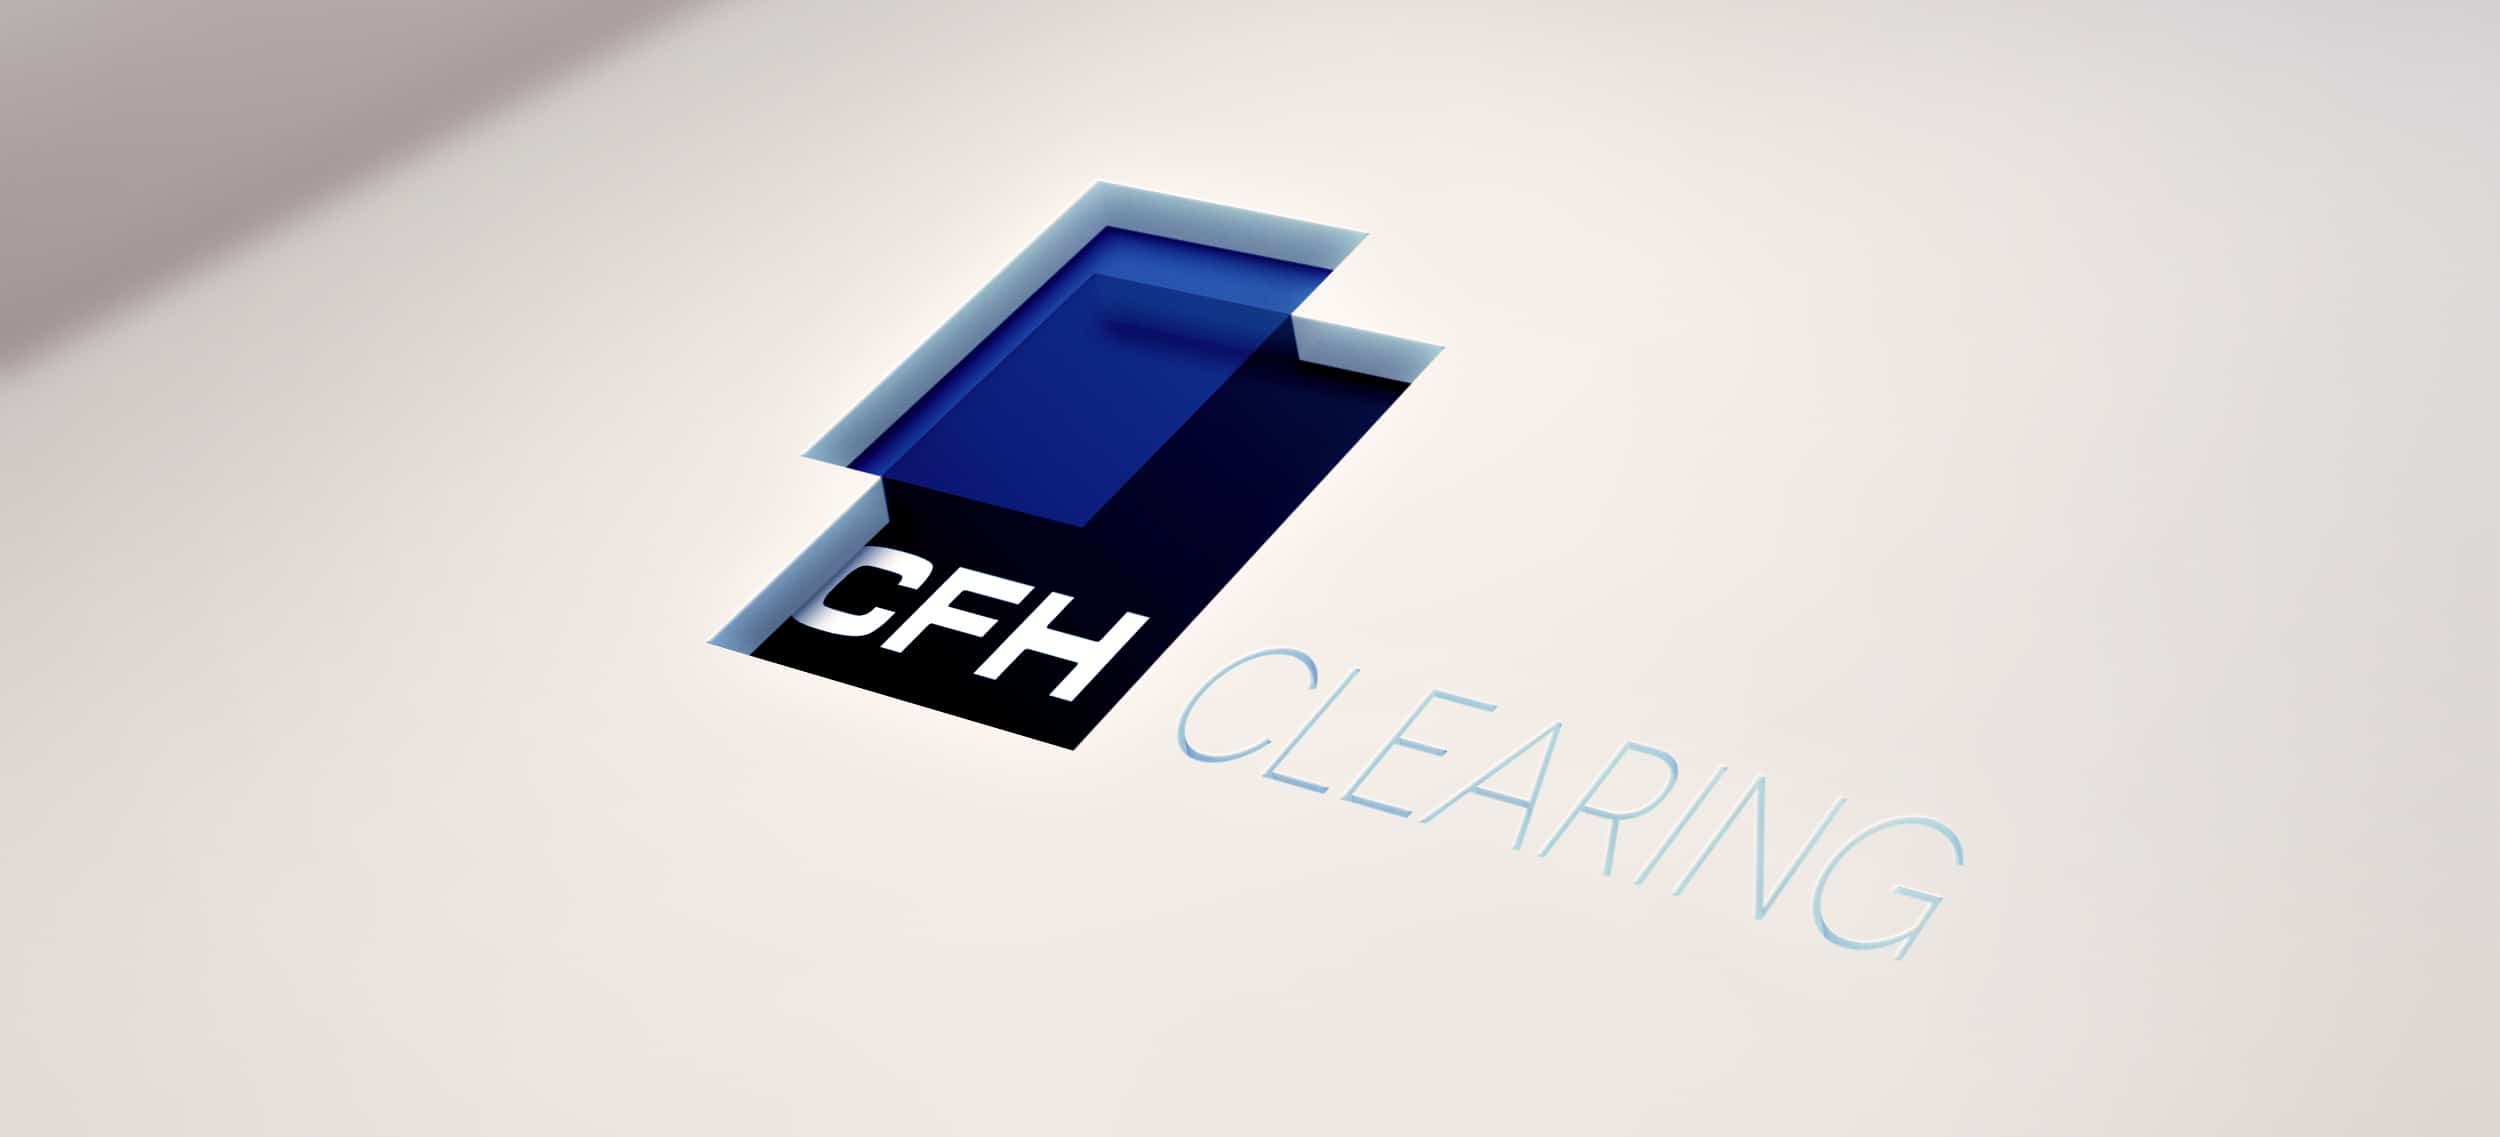 CFH Clearing Launches Partnership with Olfa Trade, Utilizing SFX Platform